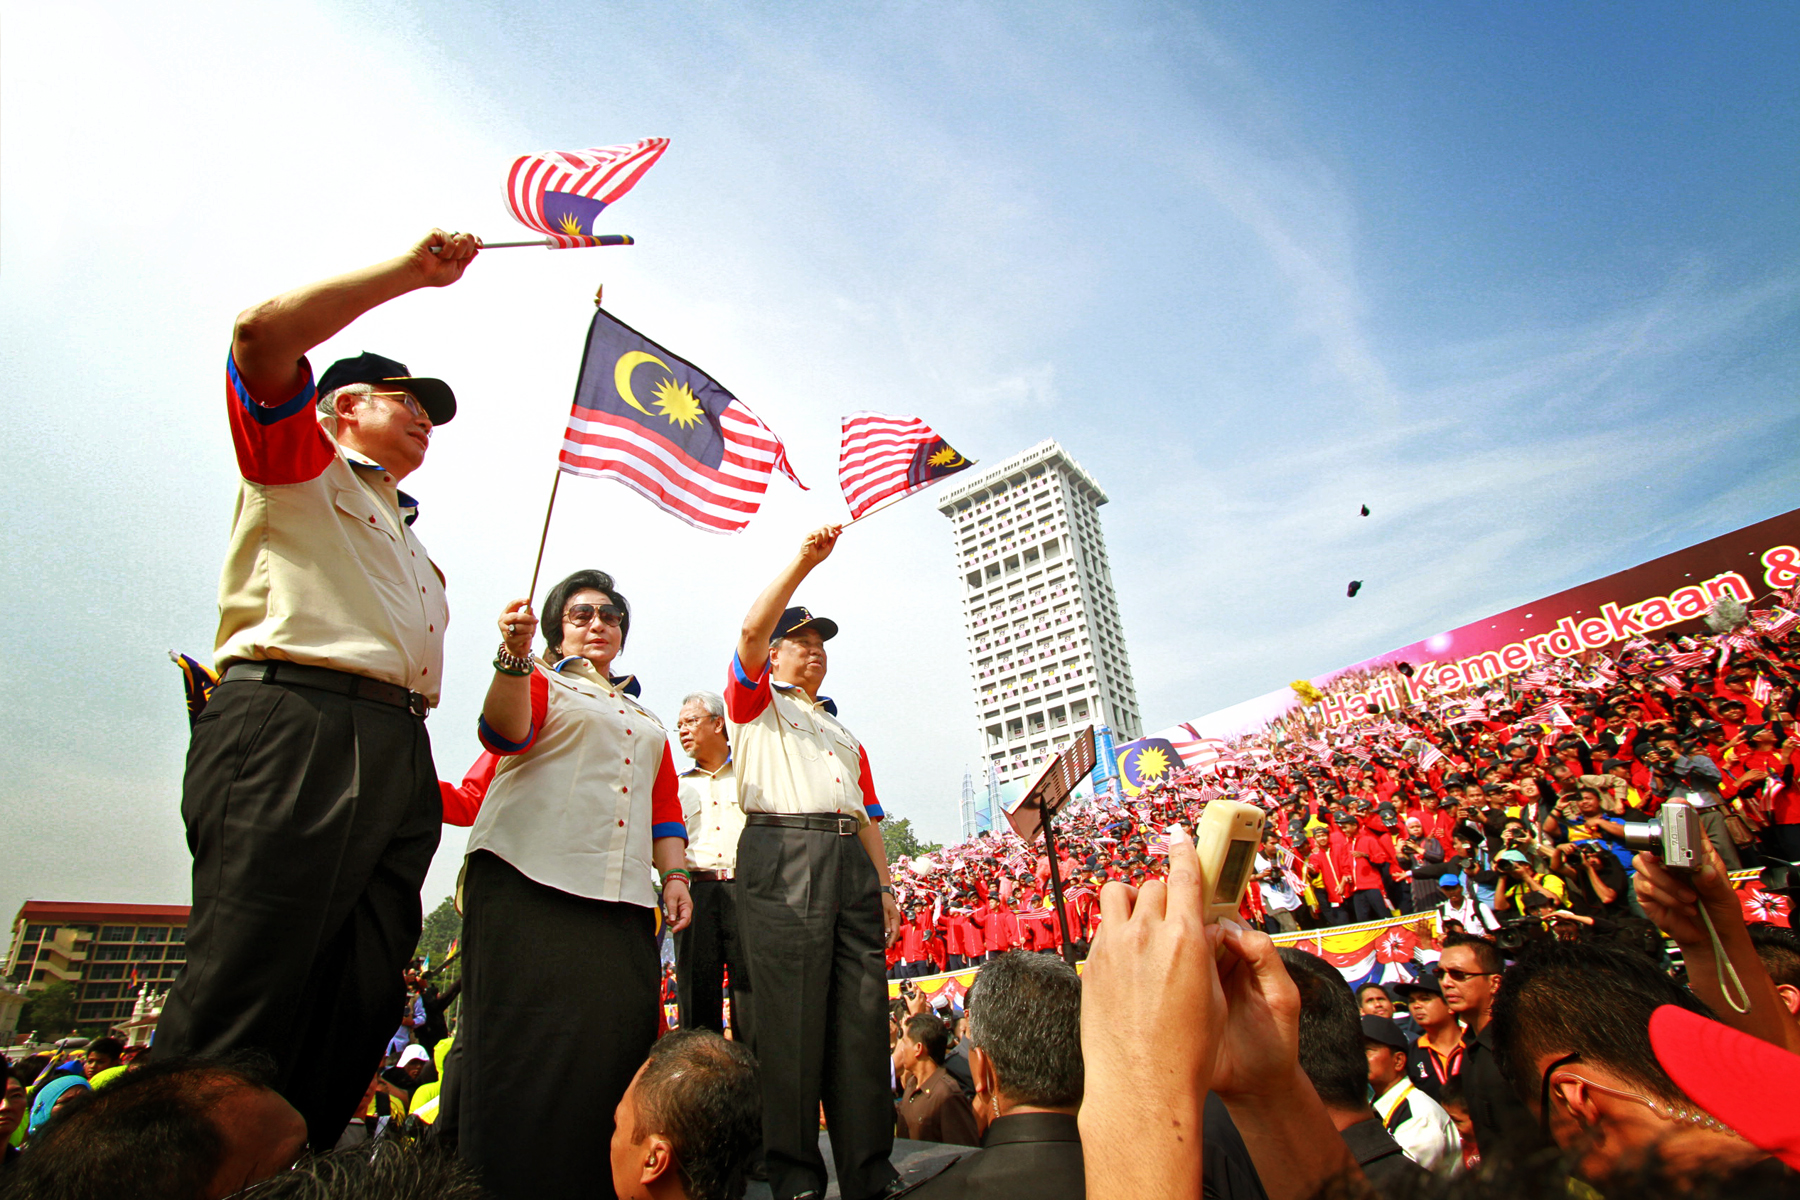 http://upload.wikimedia.org/wikipedia/commons/2/20/Hari_Malaysia_celebration_in_2011.jpg